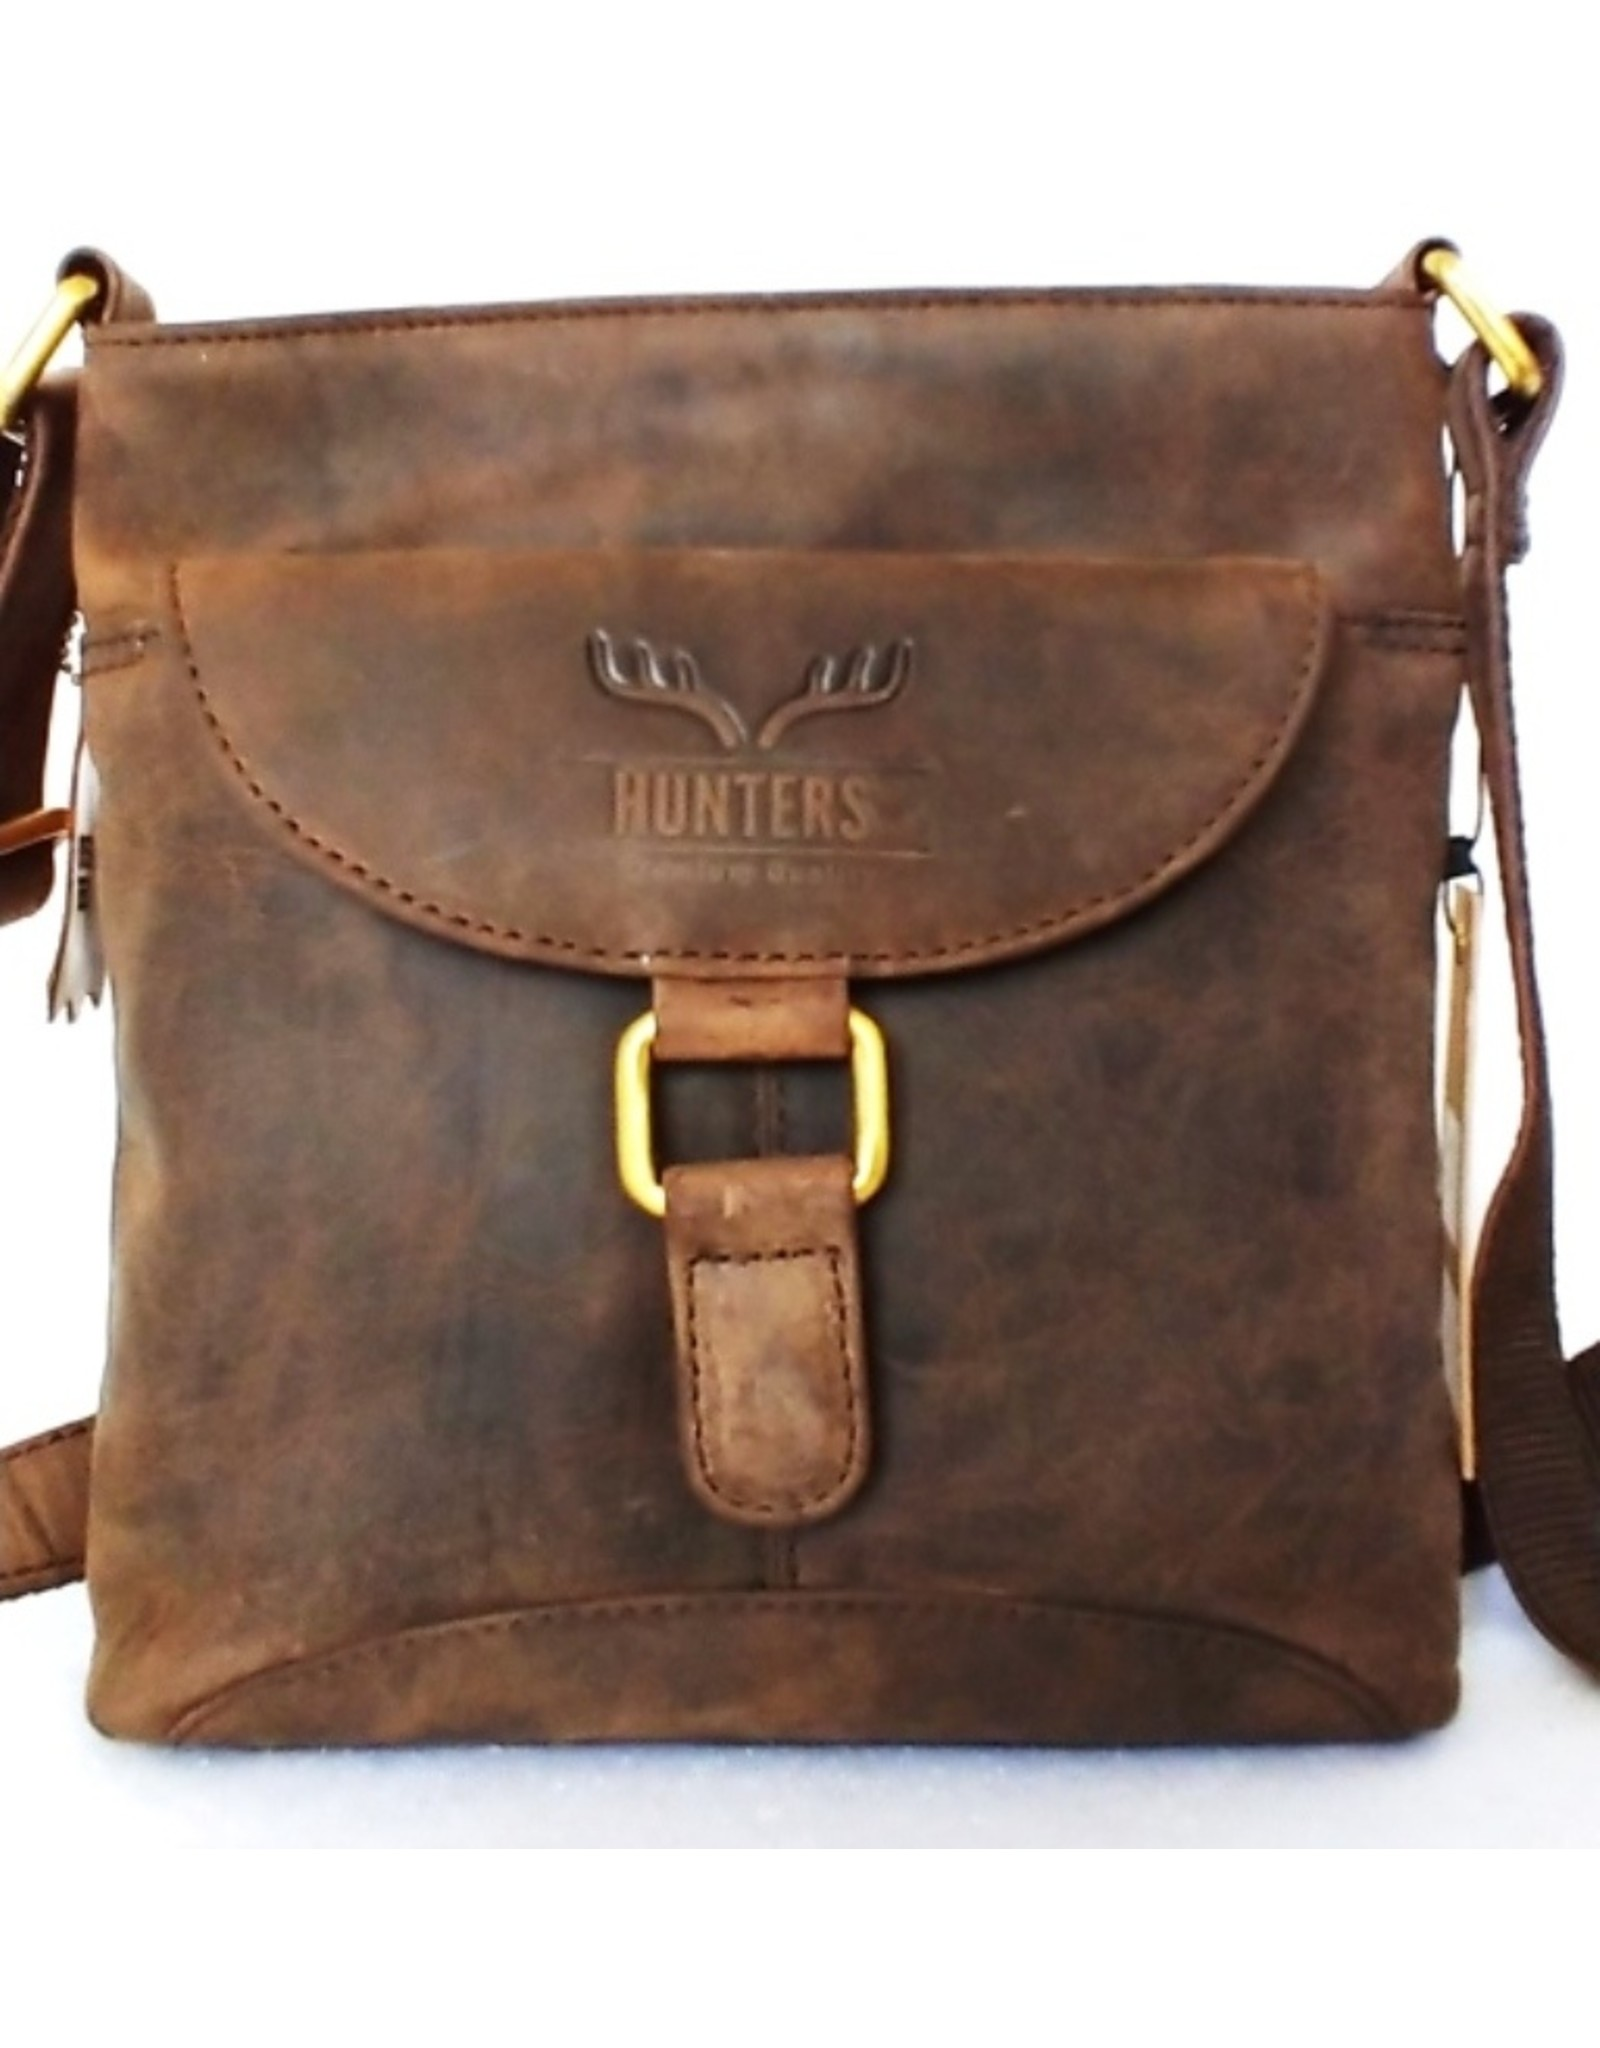 Hunters Leather bags - Hunters leather shoulder bag brown